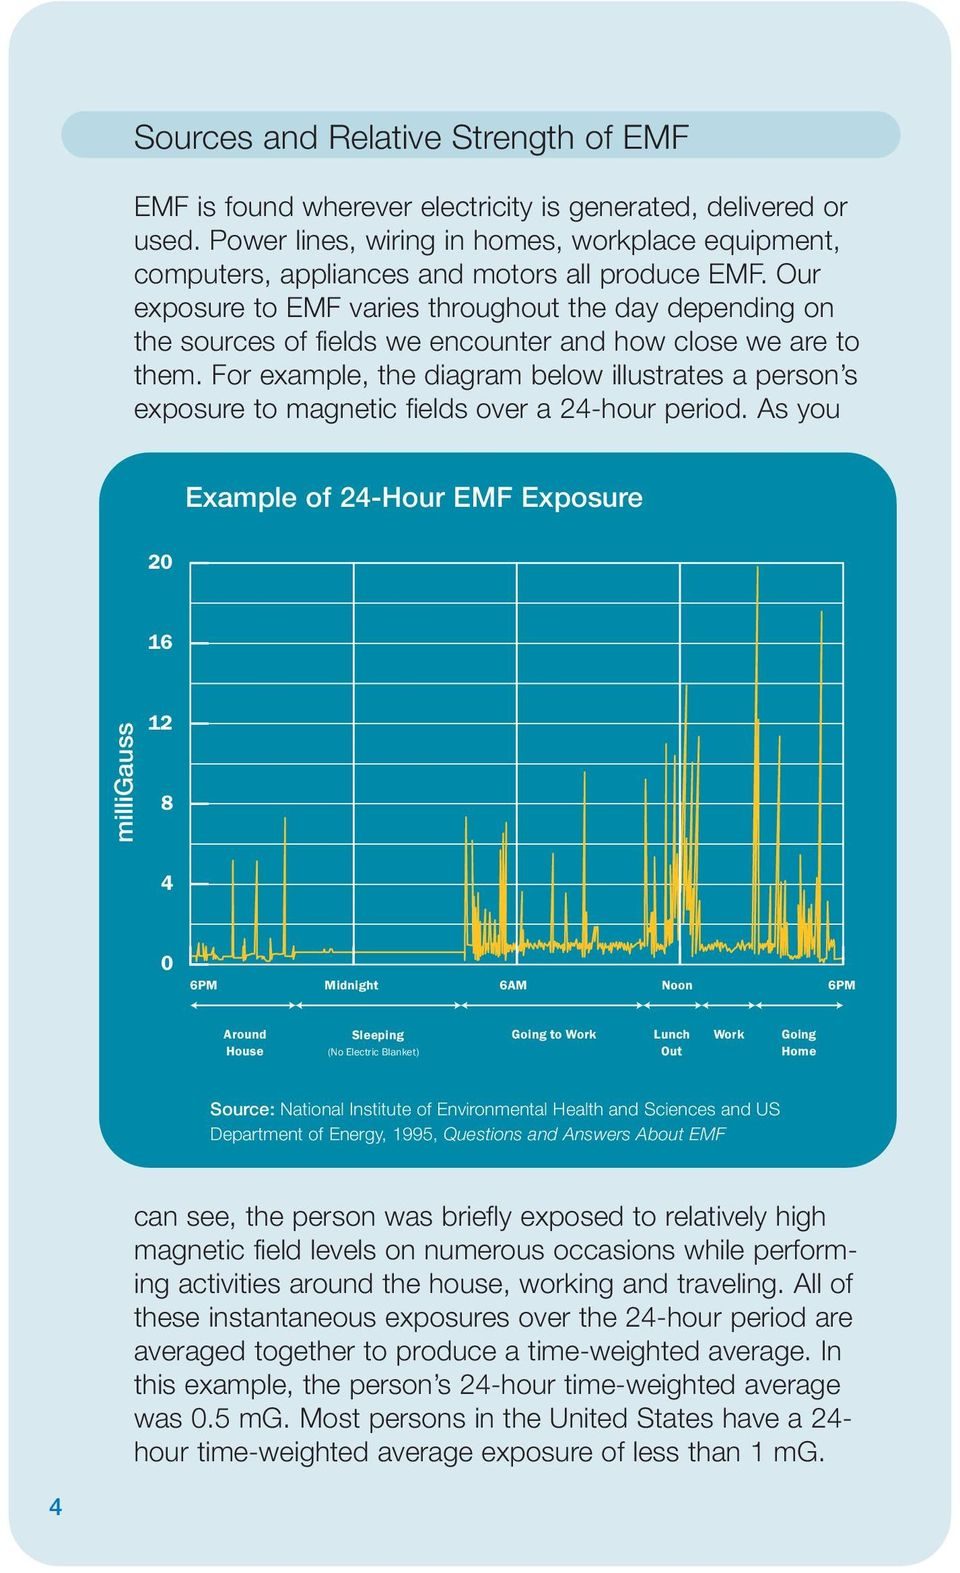 Our exposure to EMF varies throughout the day depending on the sources of fields we encounter and how close we are to them.